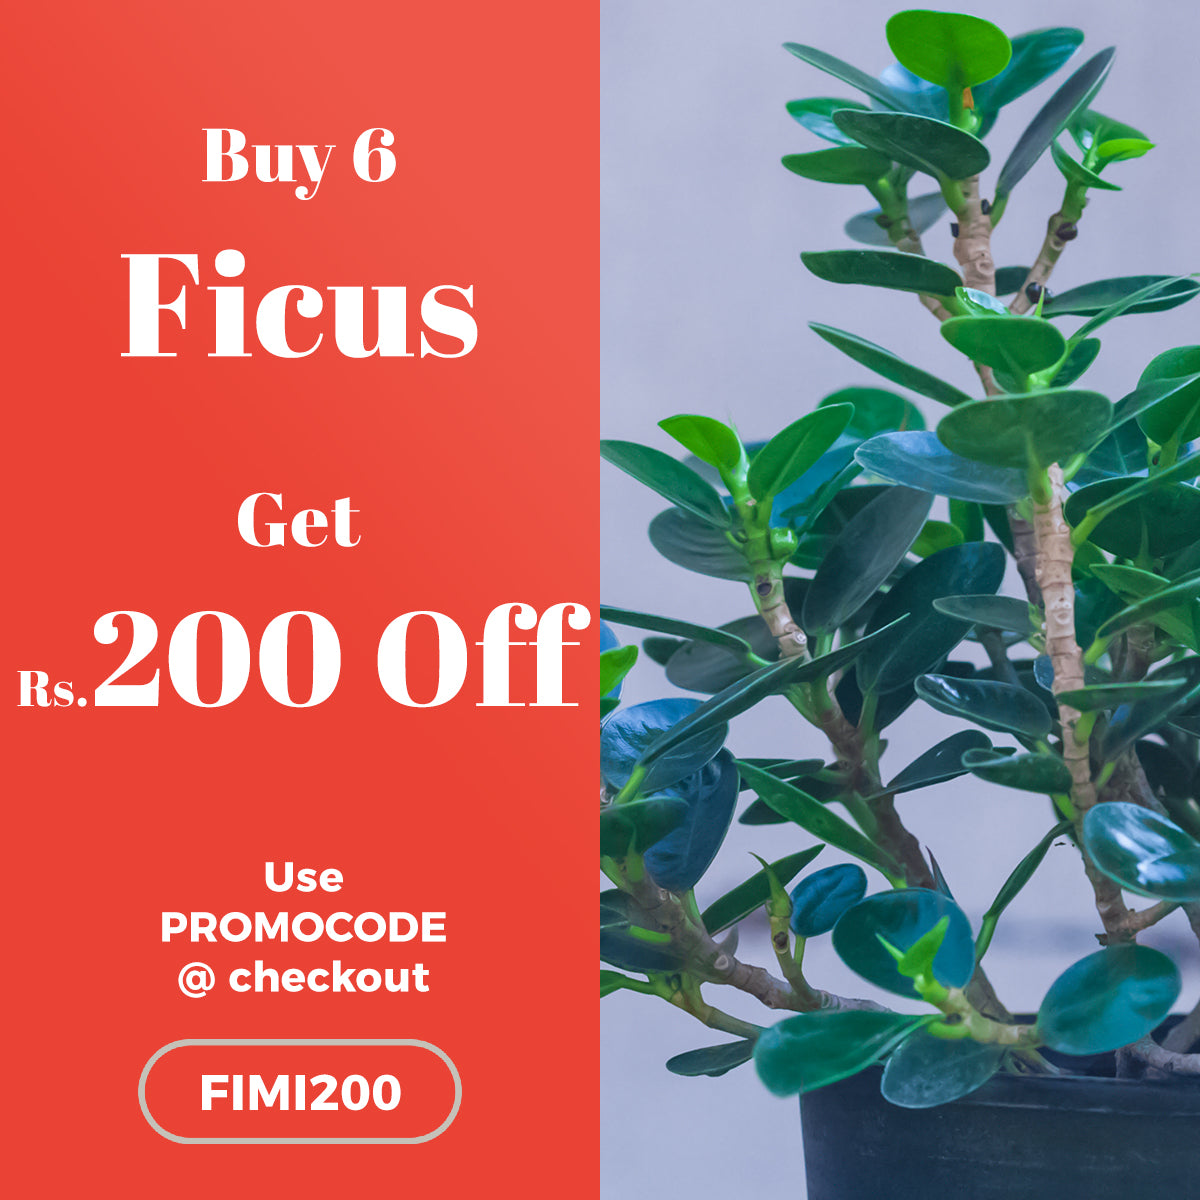 Buy 6 Ficus Plant and get Rs.200 OFF